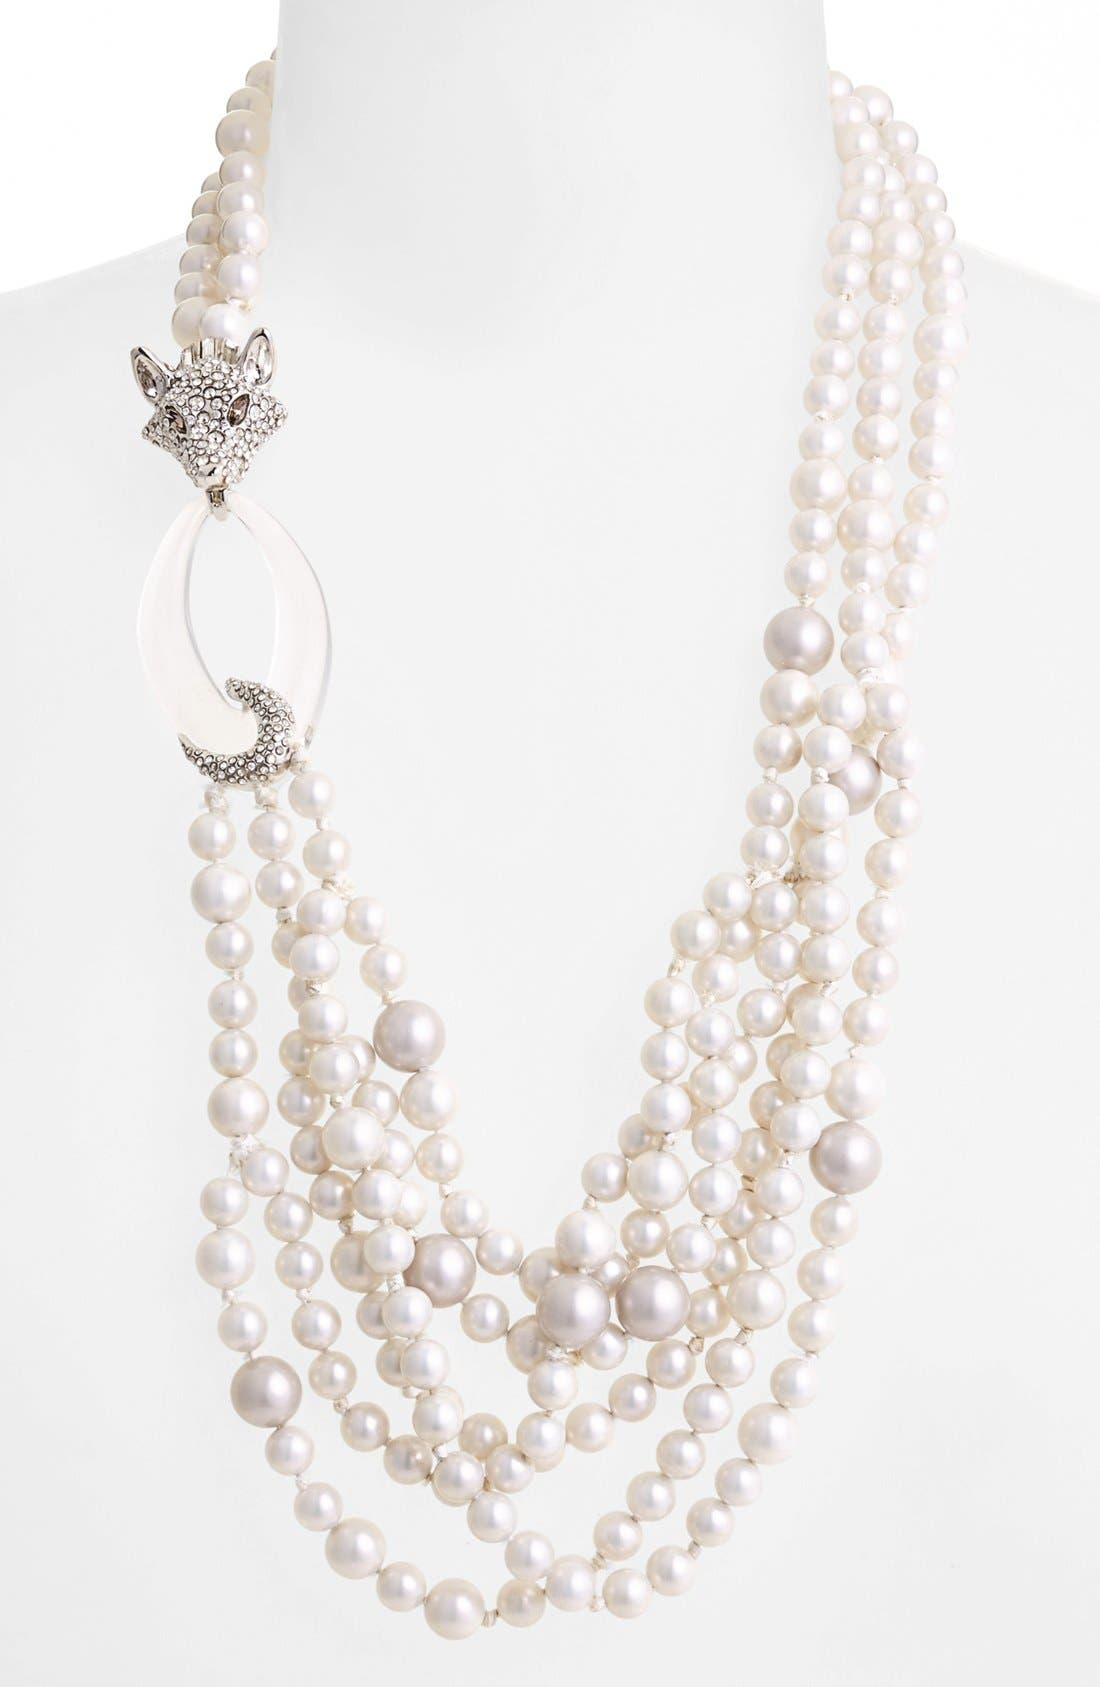 Main Image - Alexis Bittar 'Lucite® - Winter Deco' Multistrand Necklace